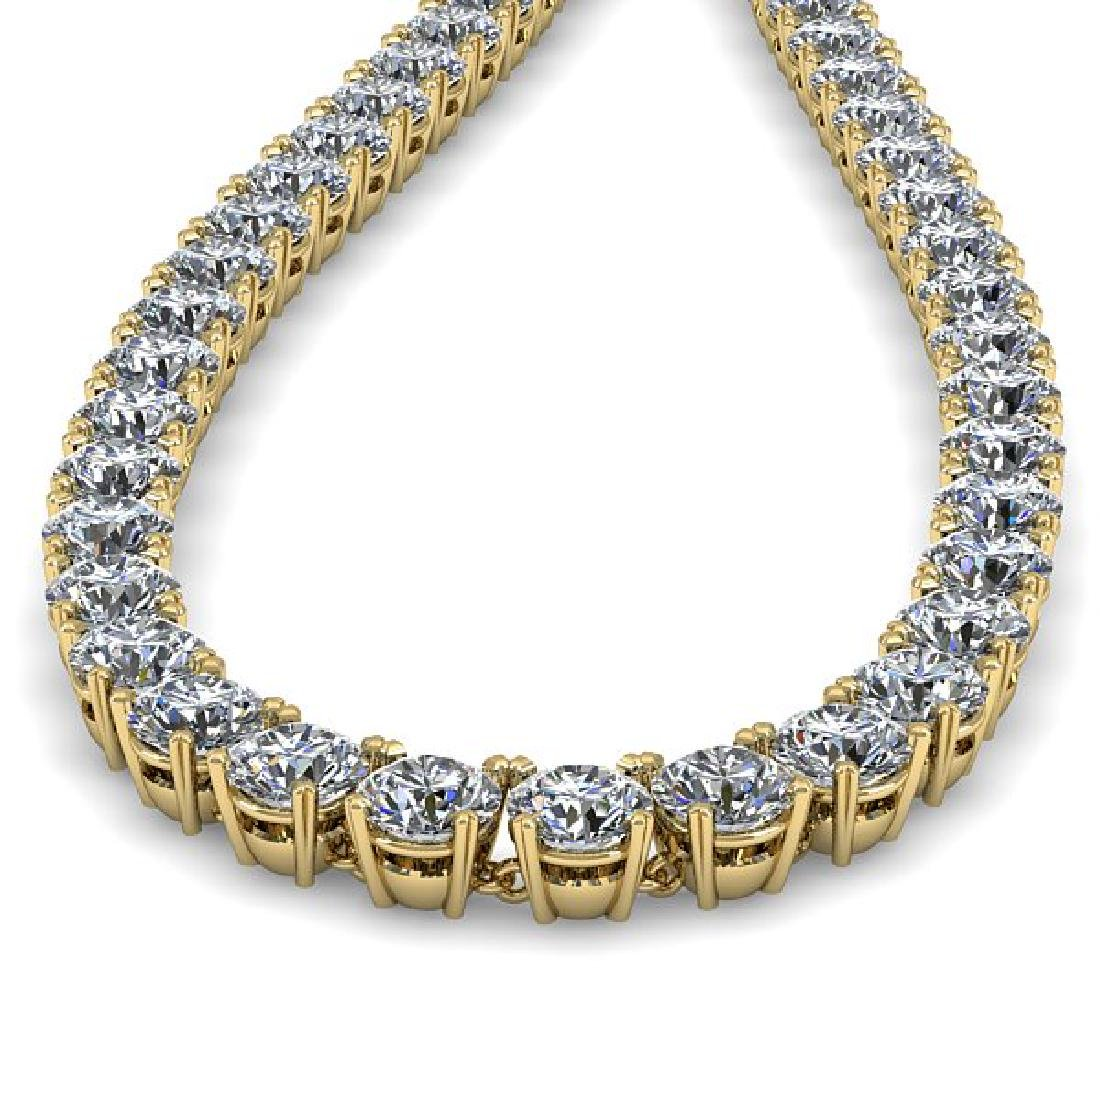 34 CTW Certified SI Diamond Necklace 14K Yellow Gold - 2